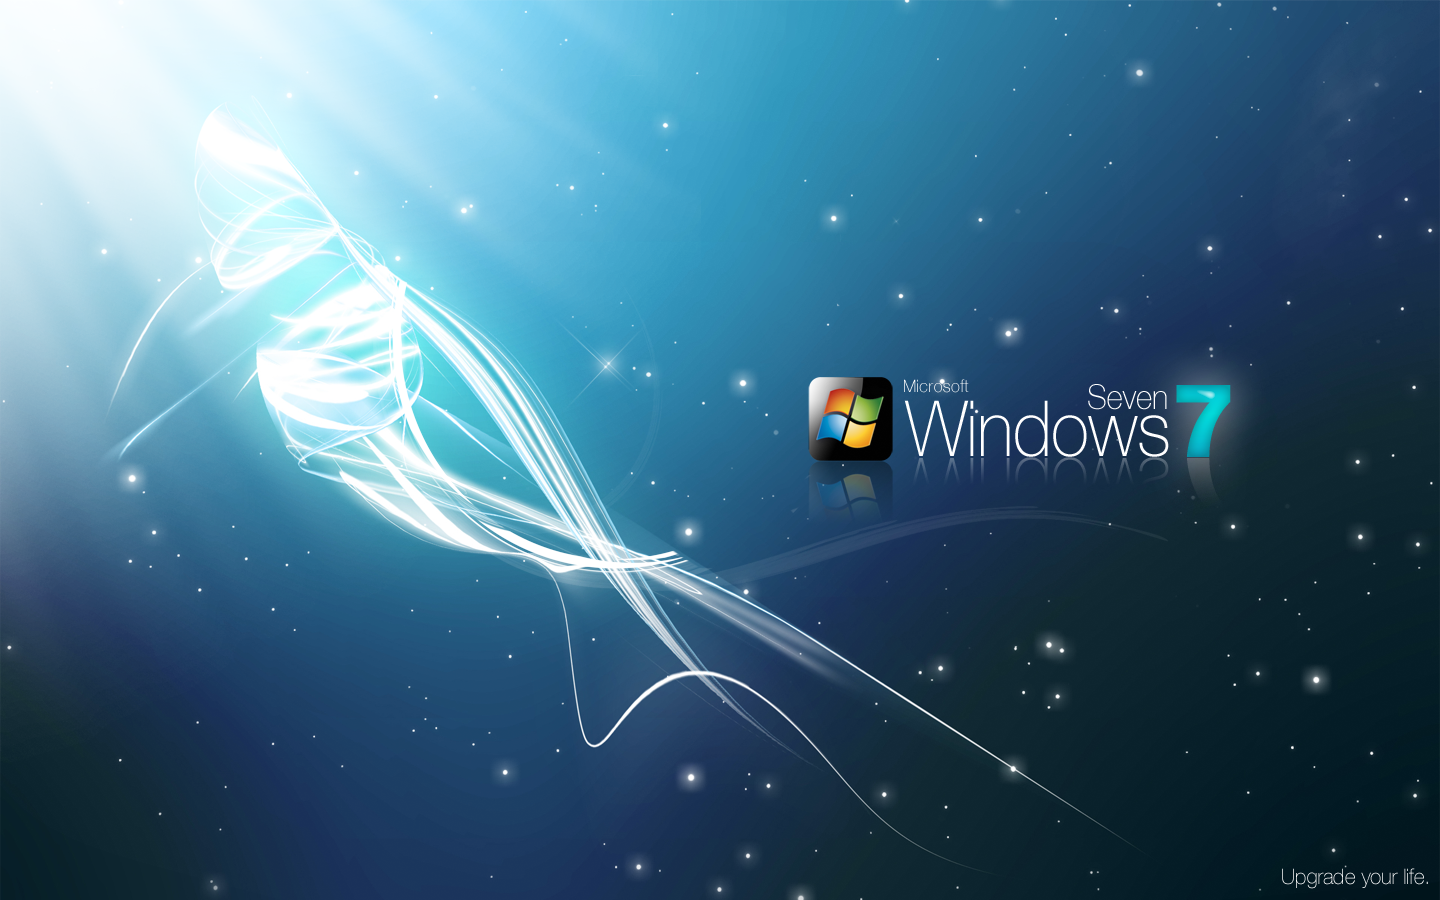 http://4.bp.blogspot.com/_cMCVQIMtt20/TR9UK4SyvaI/AAAAAAAAAM0/N3EcgjHpTqU/s1600/windows-7-wallpaper-future.png